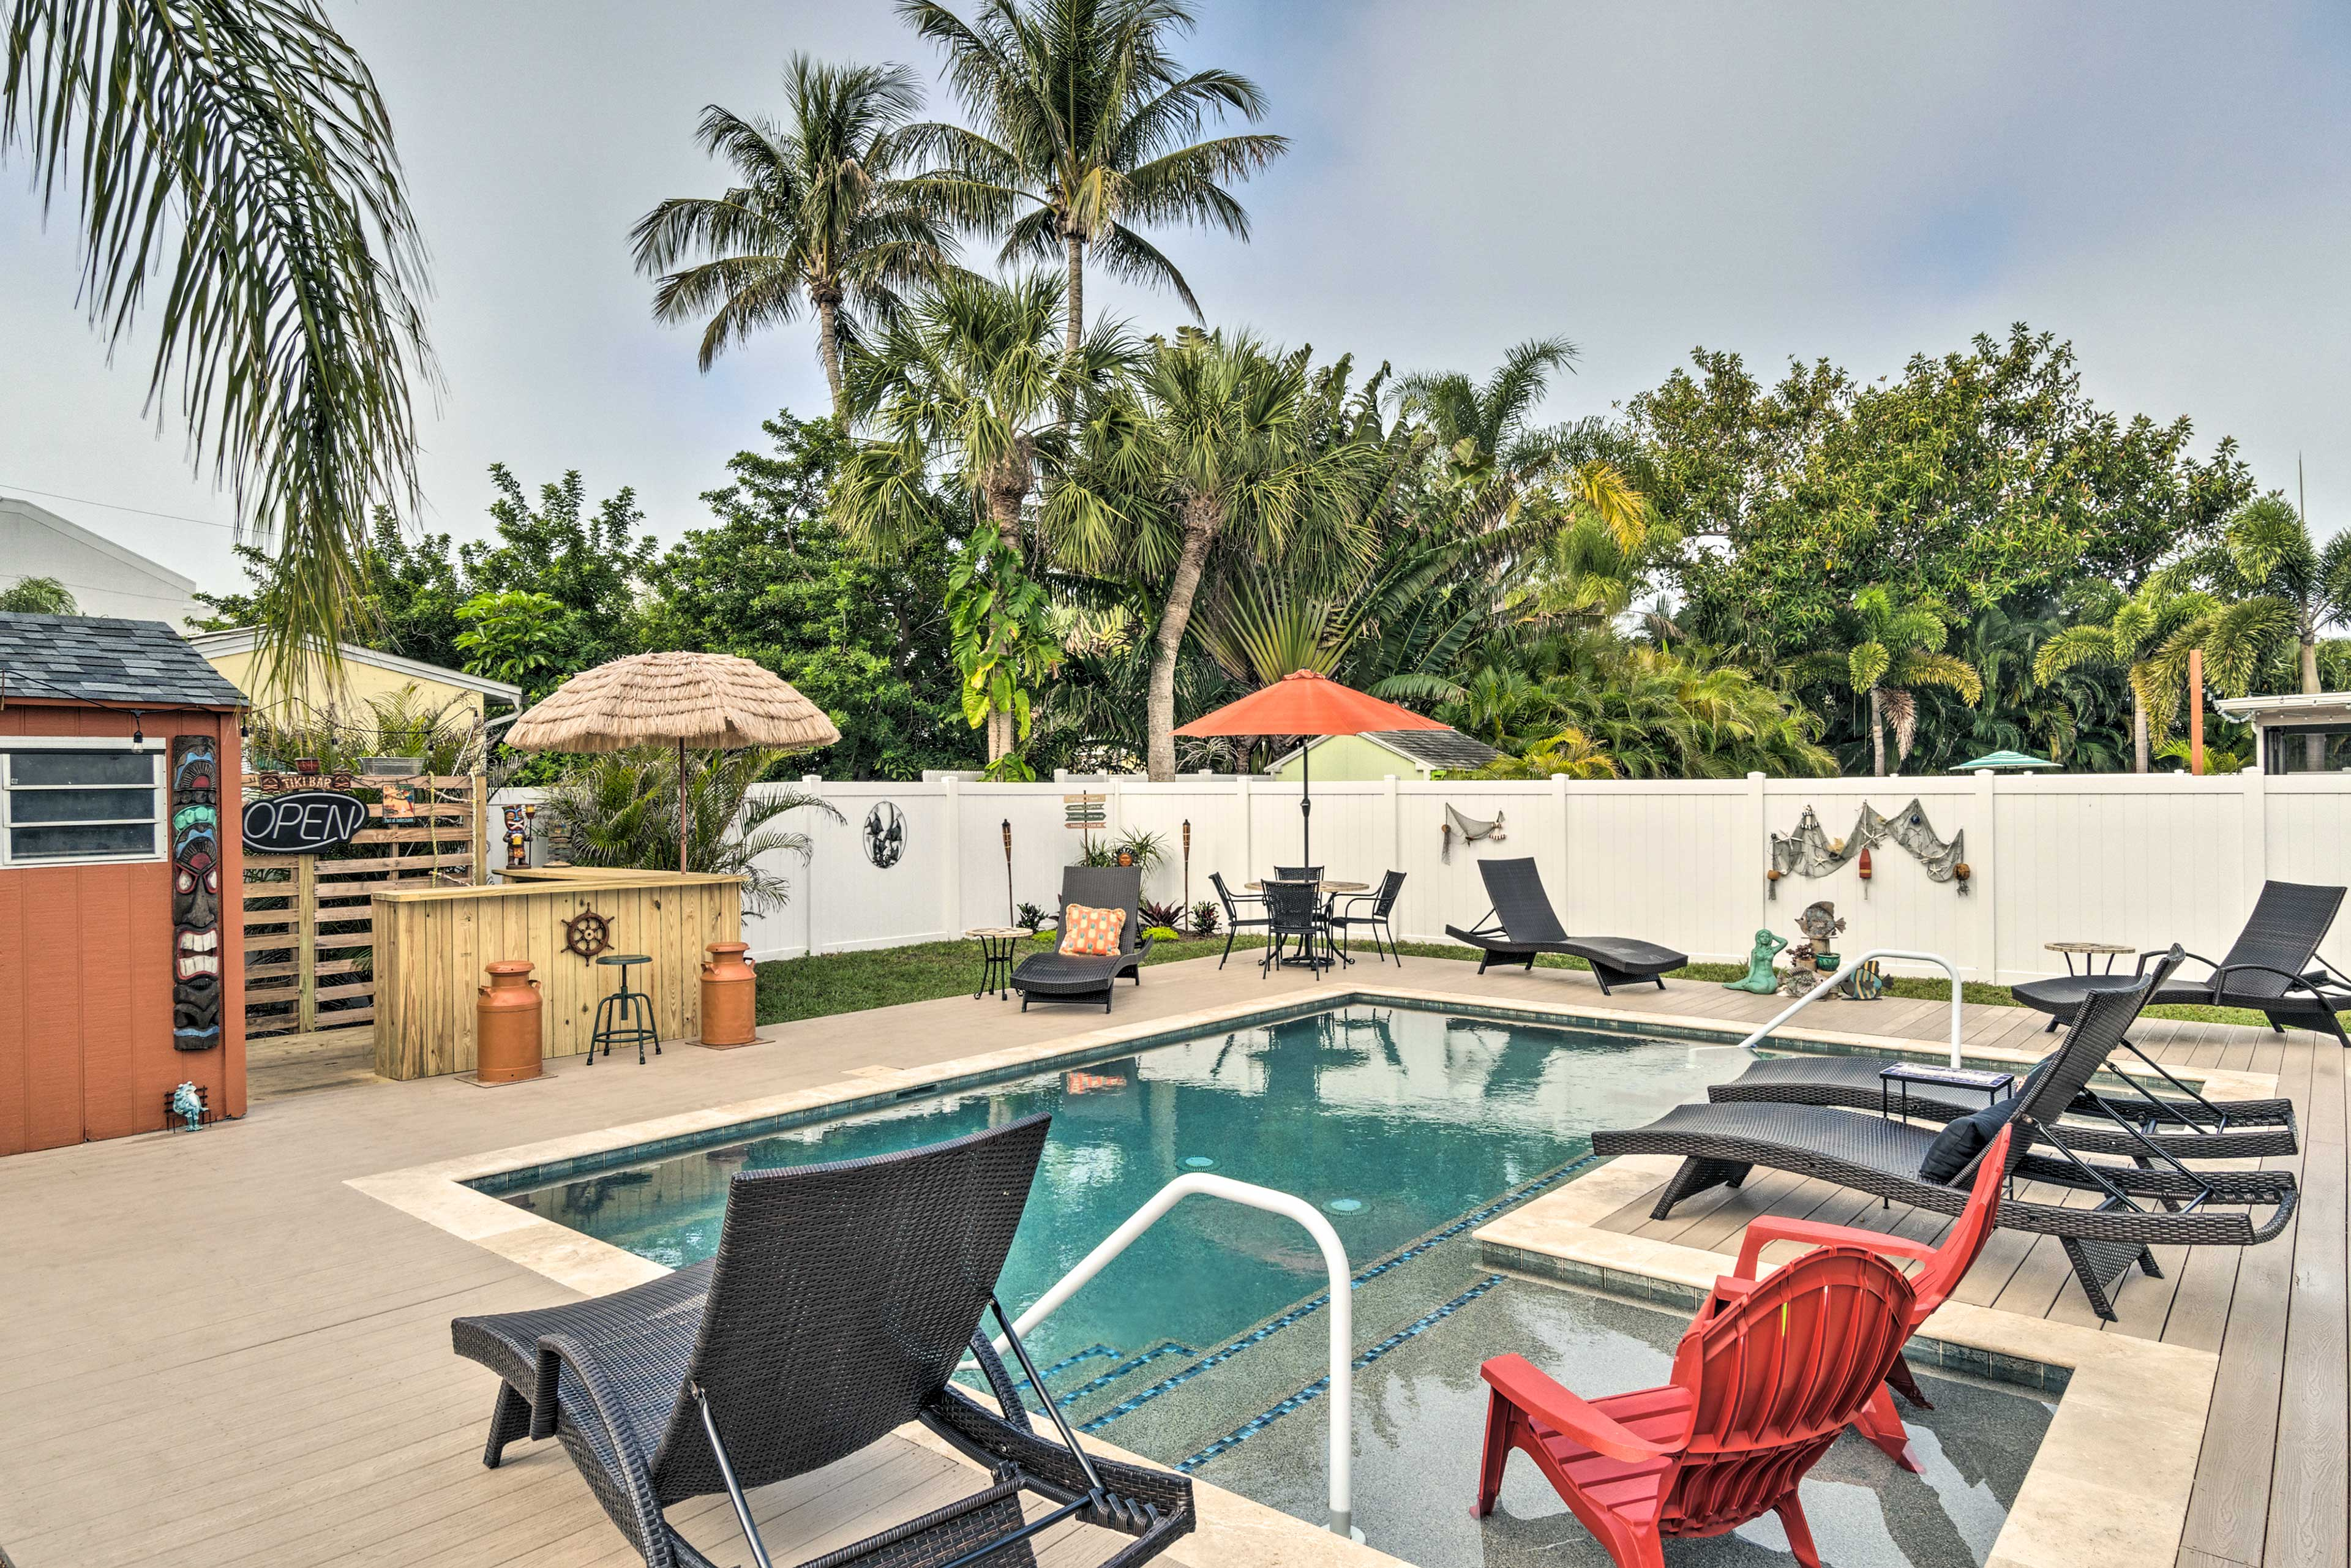 Spend all day relaxing by your private heated pool.